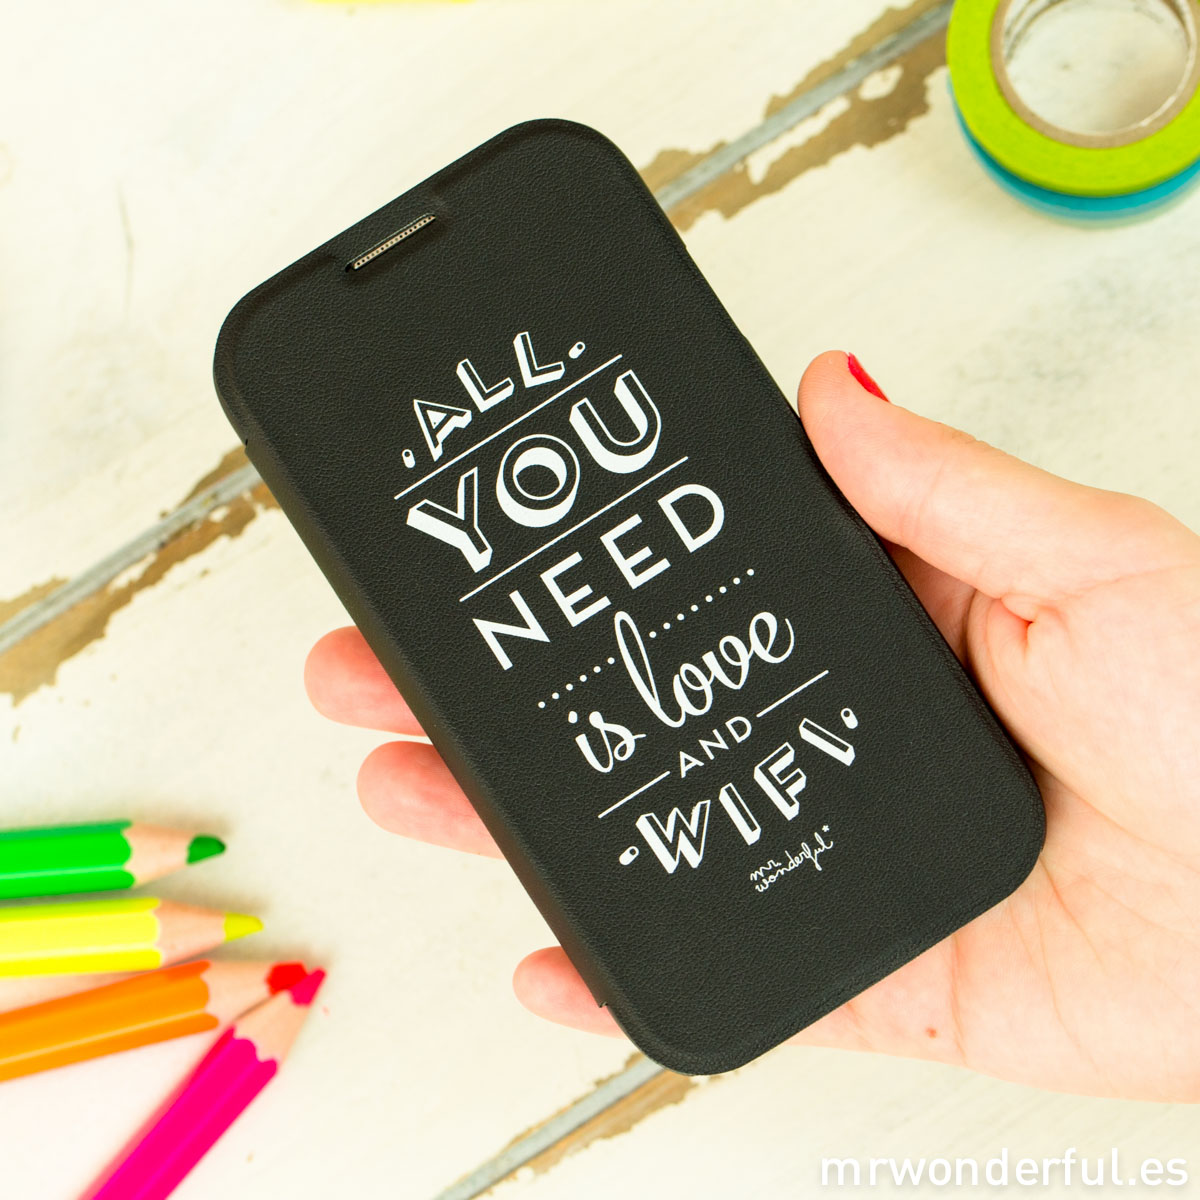 mrwonderful_MRFOL001_funda-negra-samsung-galaxy-S4_all-you-need-love-wifi-24